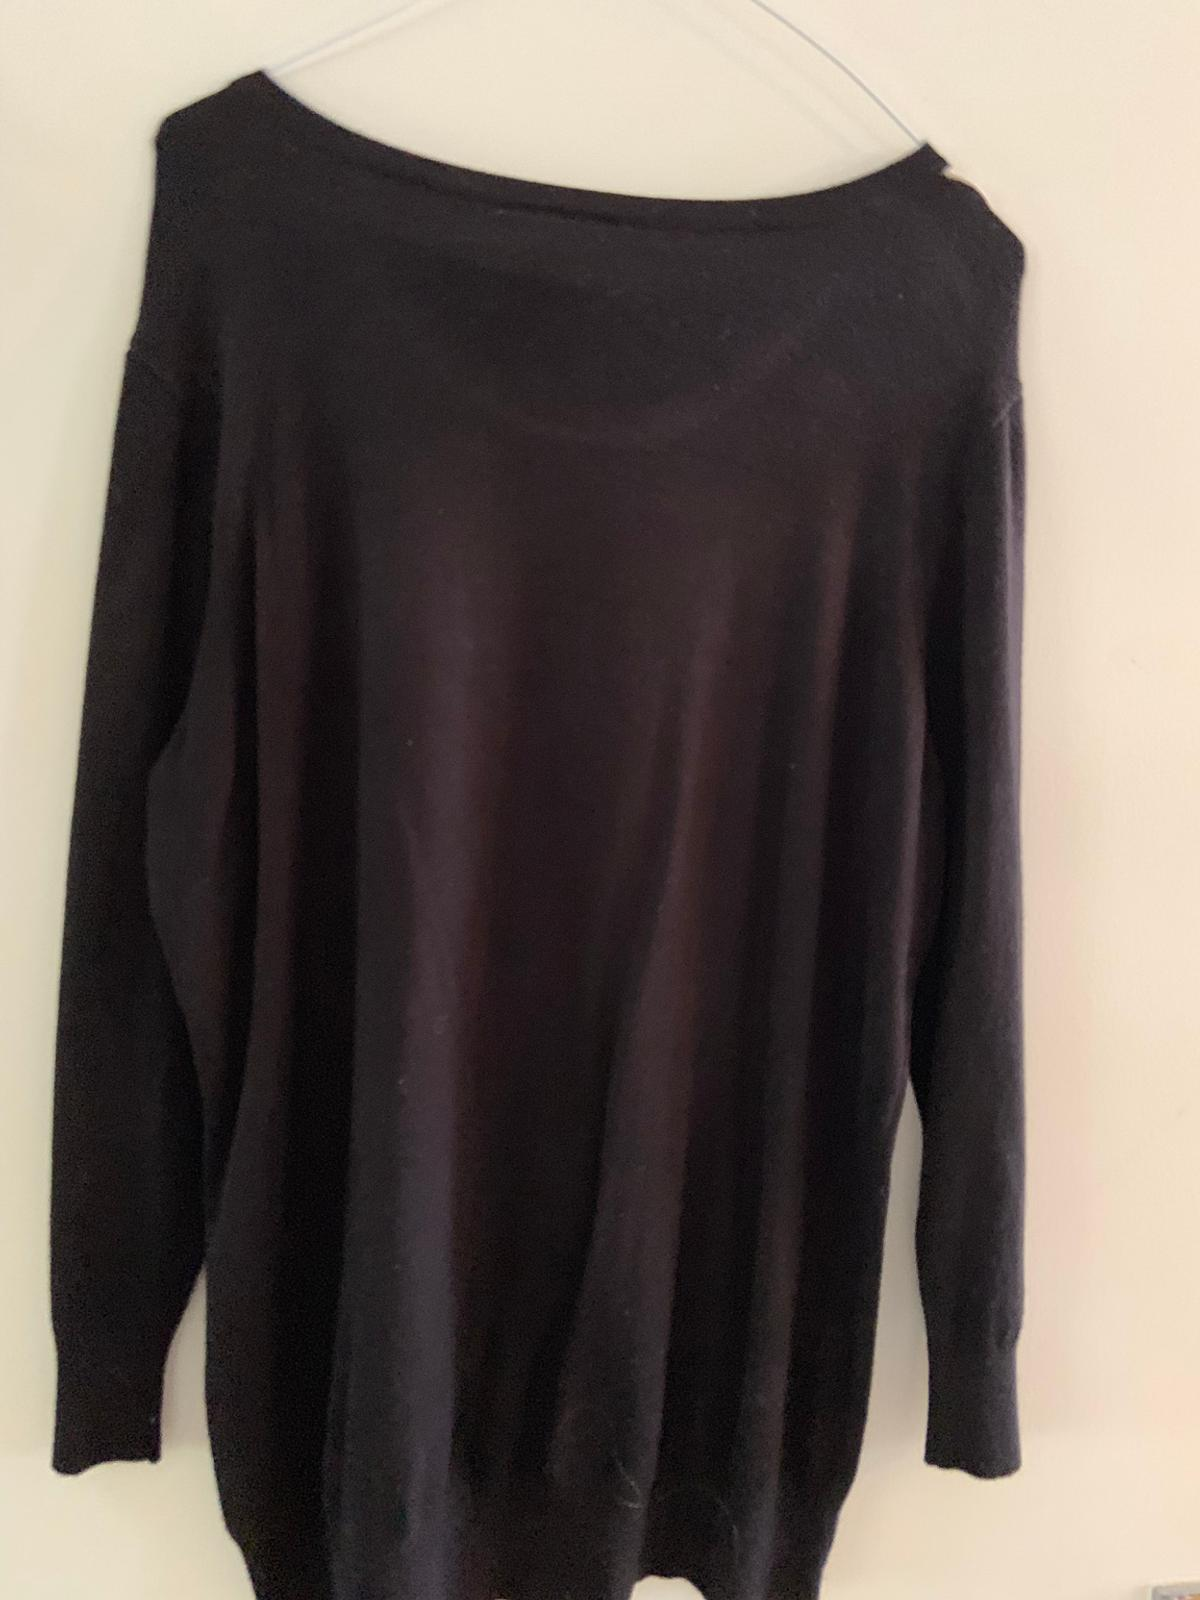 Size 16 women's Wallis jumper collection only